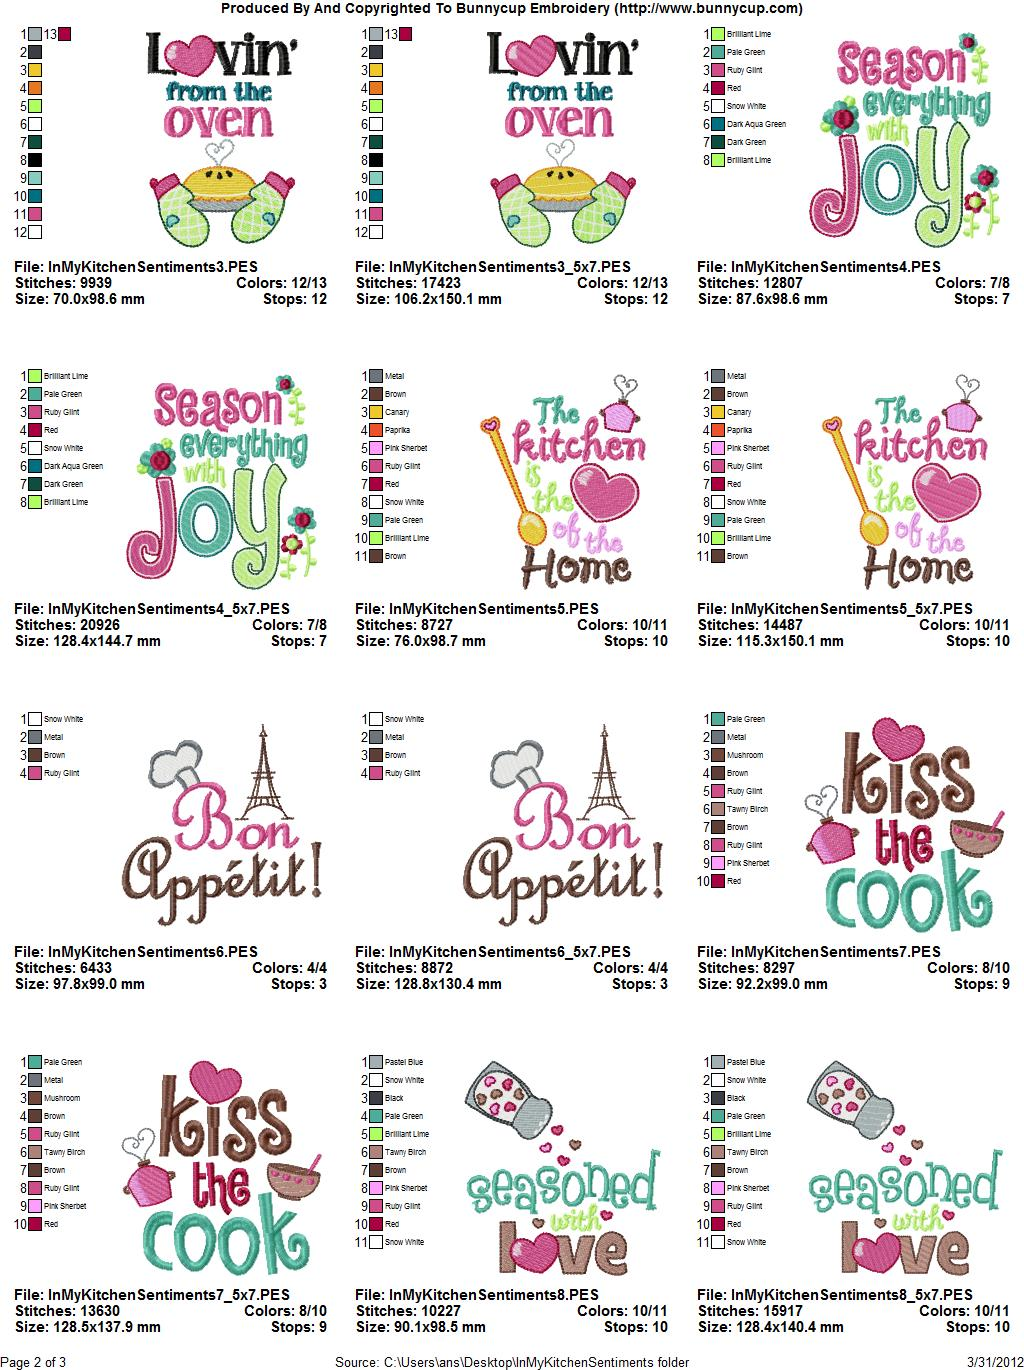 In My Kitchen Sentiments Embroidery Designs Bunnycup